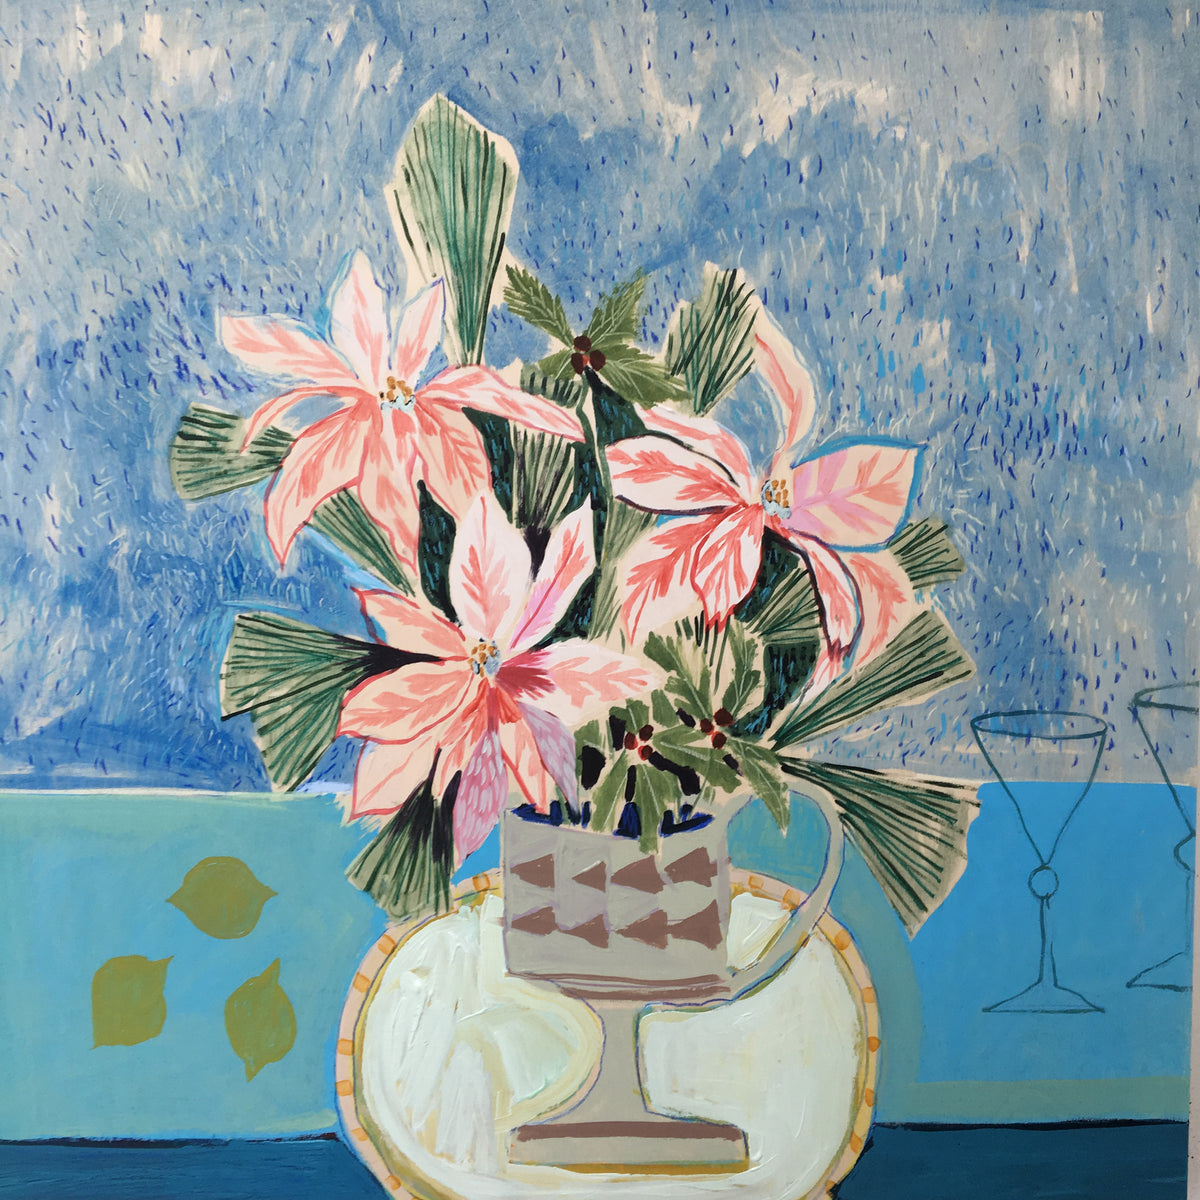 Flowers for Polly - 36x36